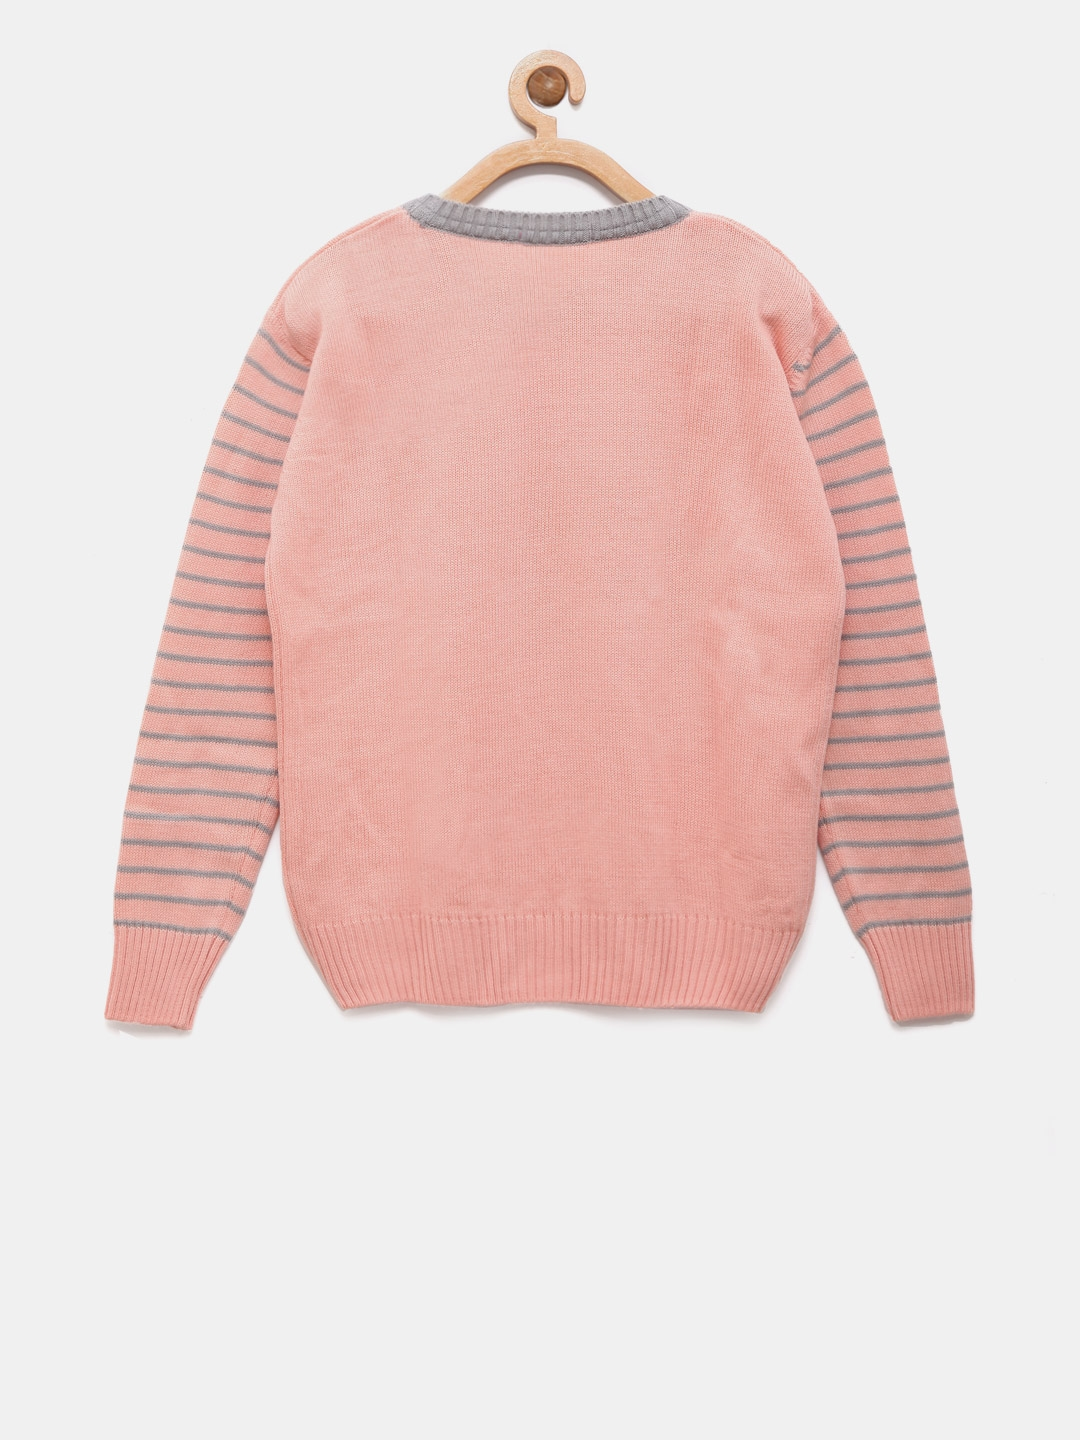 c71fb2109025 Buy Wingsfield Girls Peach Coloured   Grey Printed Sweater ...